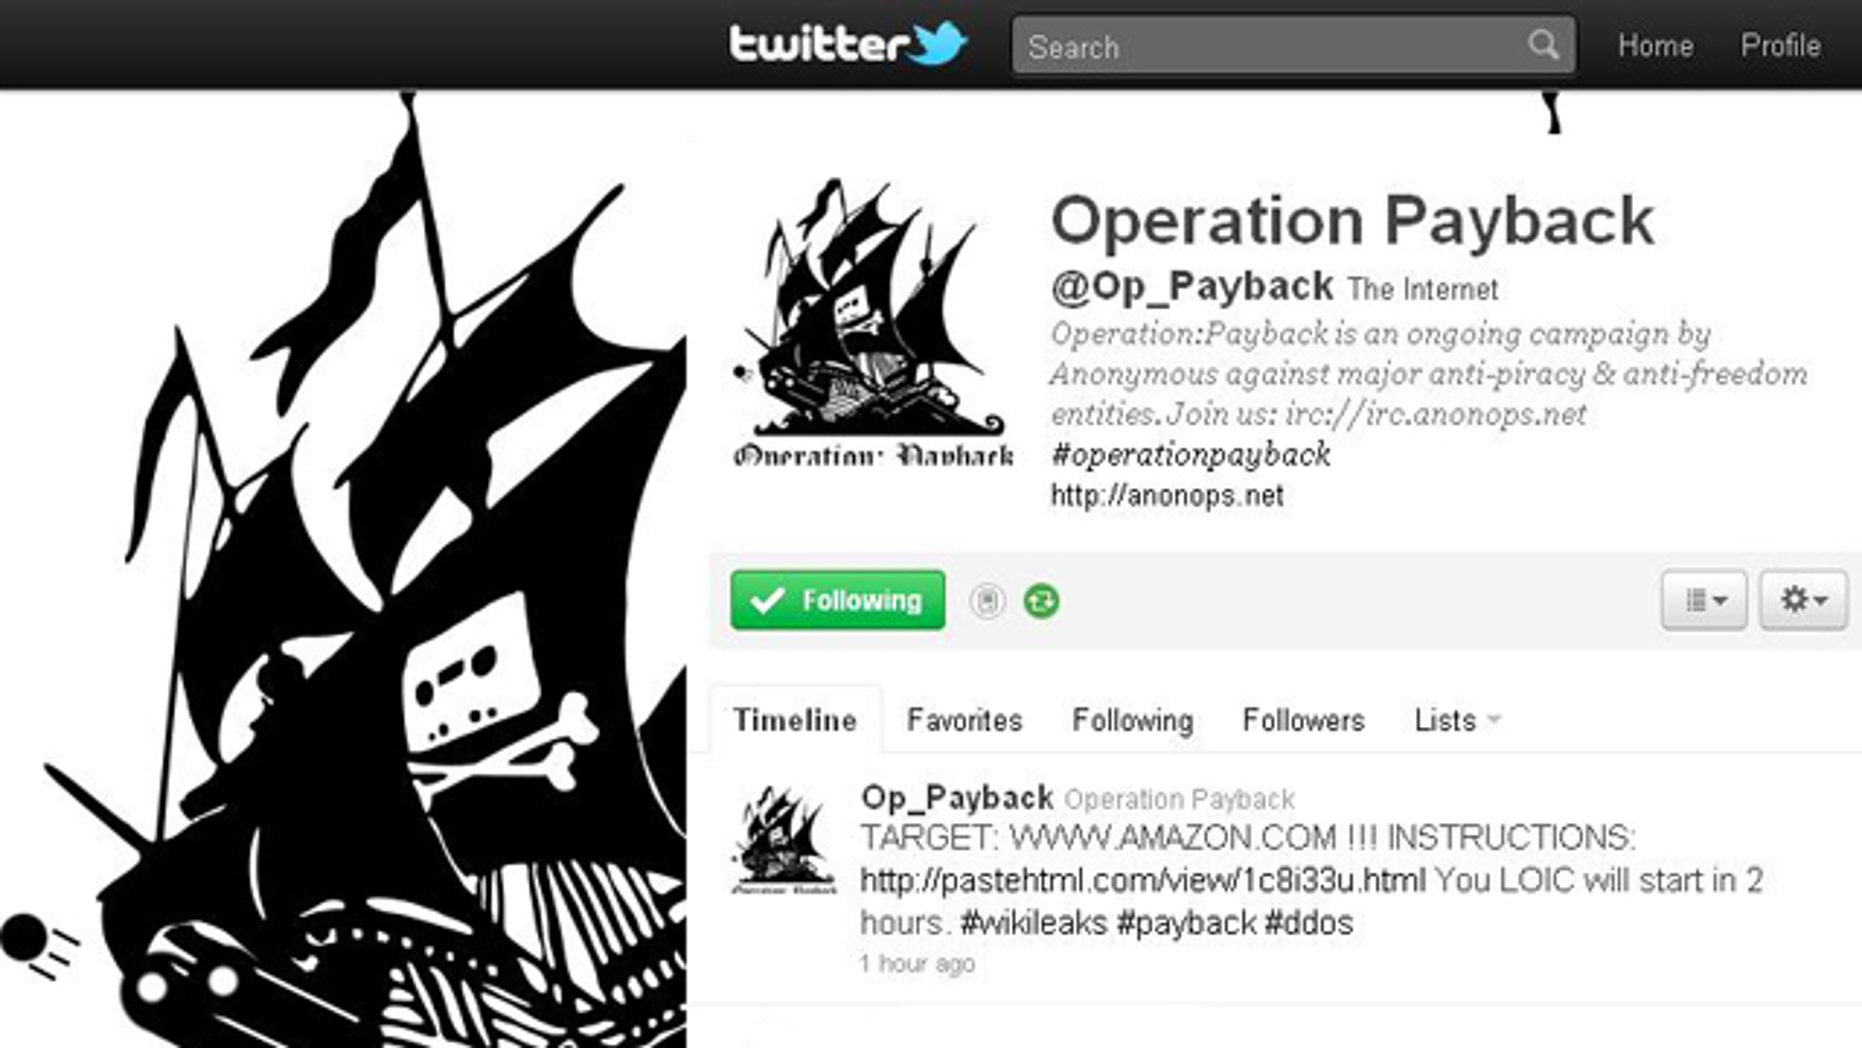 On the Twitter feed for Operation: Payback's, a cyberattack campaign targeting the perceived opponents of WikiLeaks, the next target is highlighted: Amazon.com.